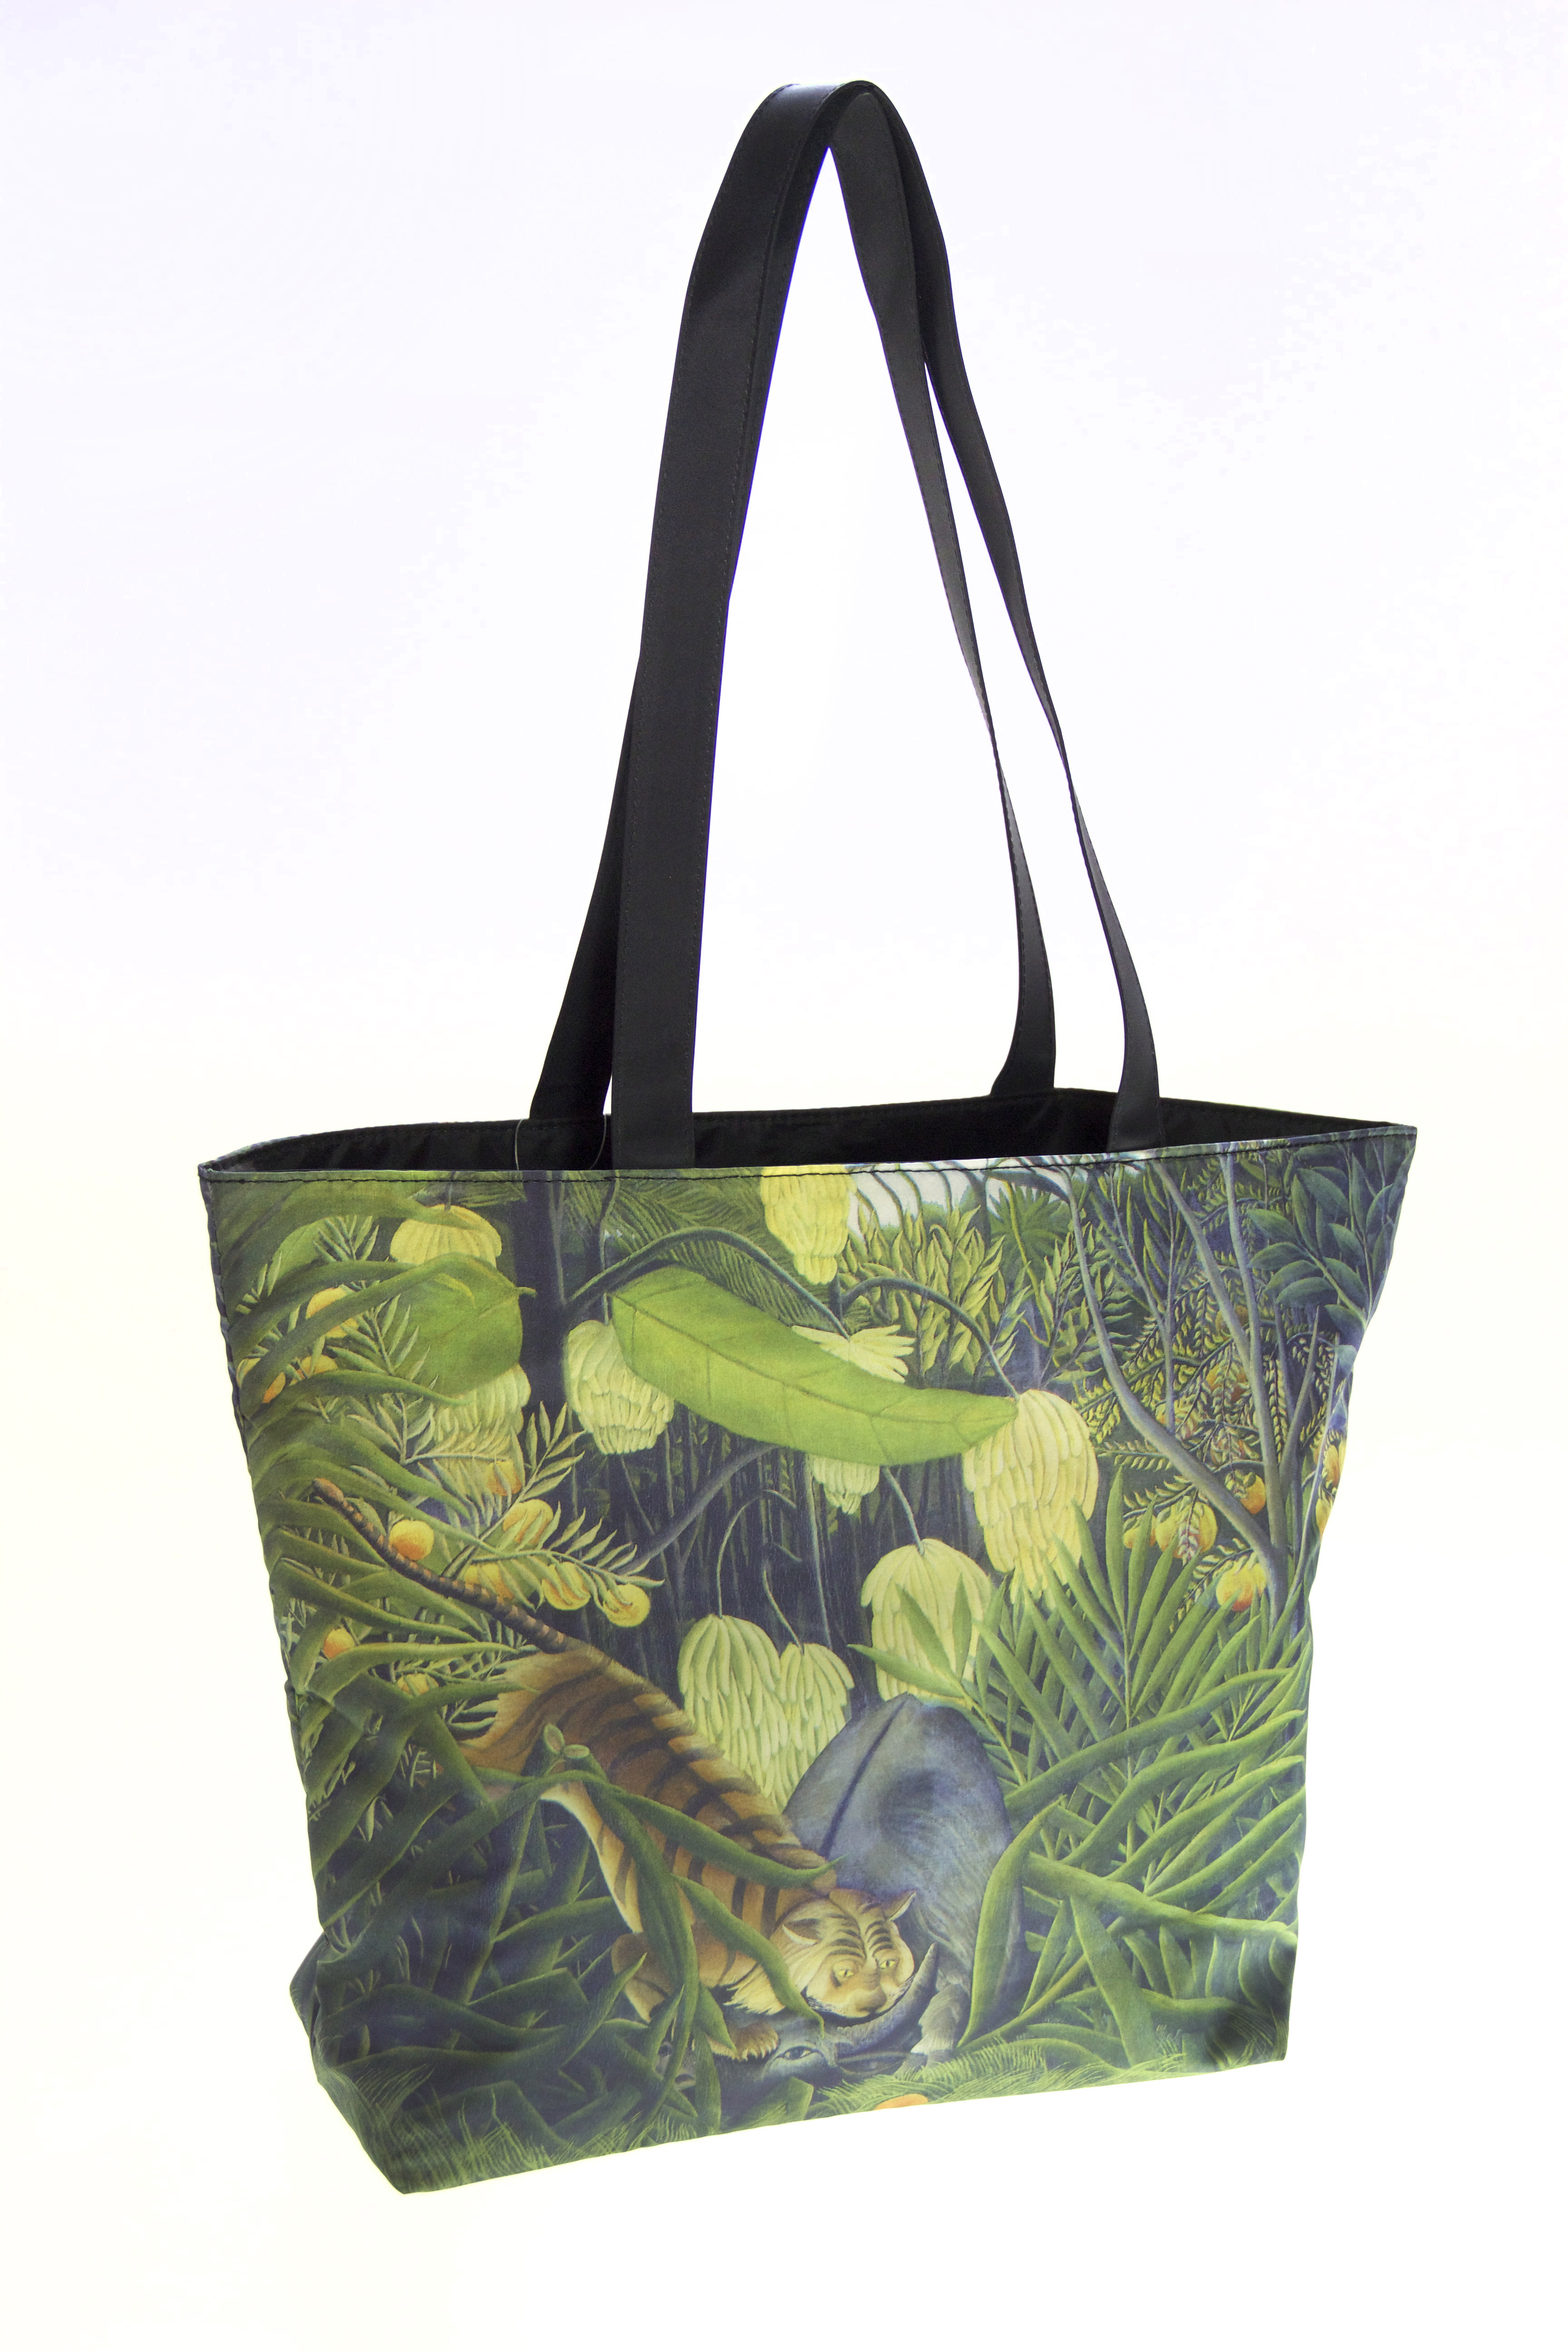 Totes with Full Color Artwork